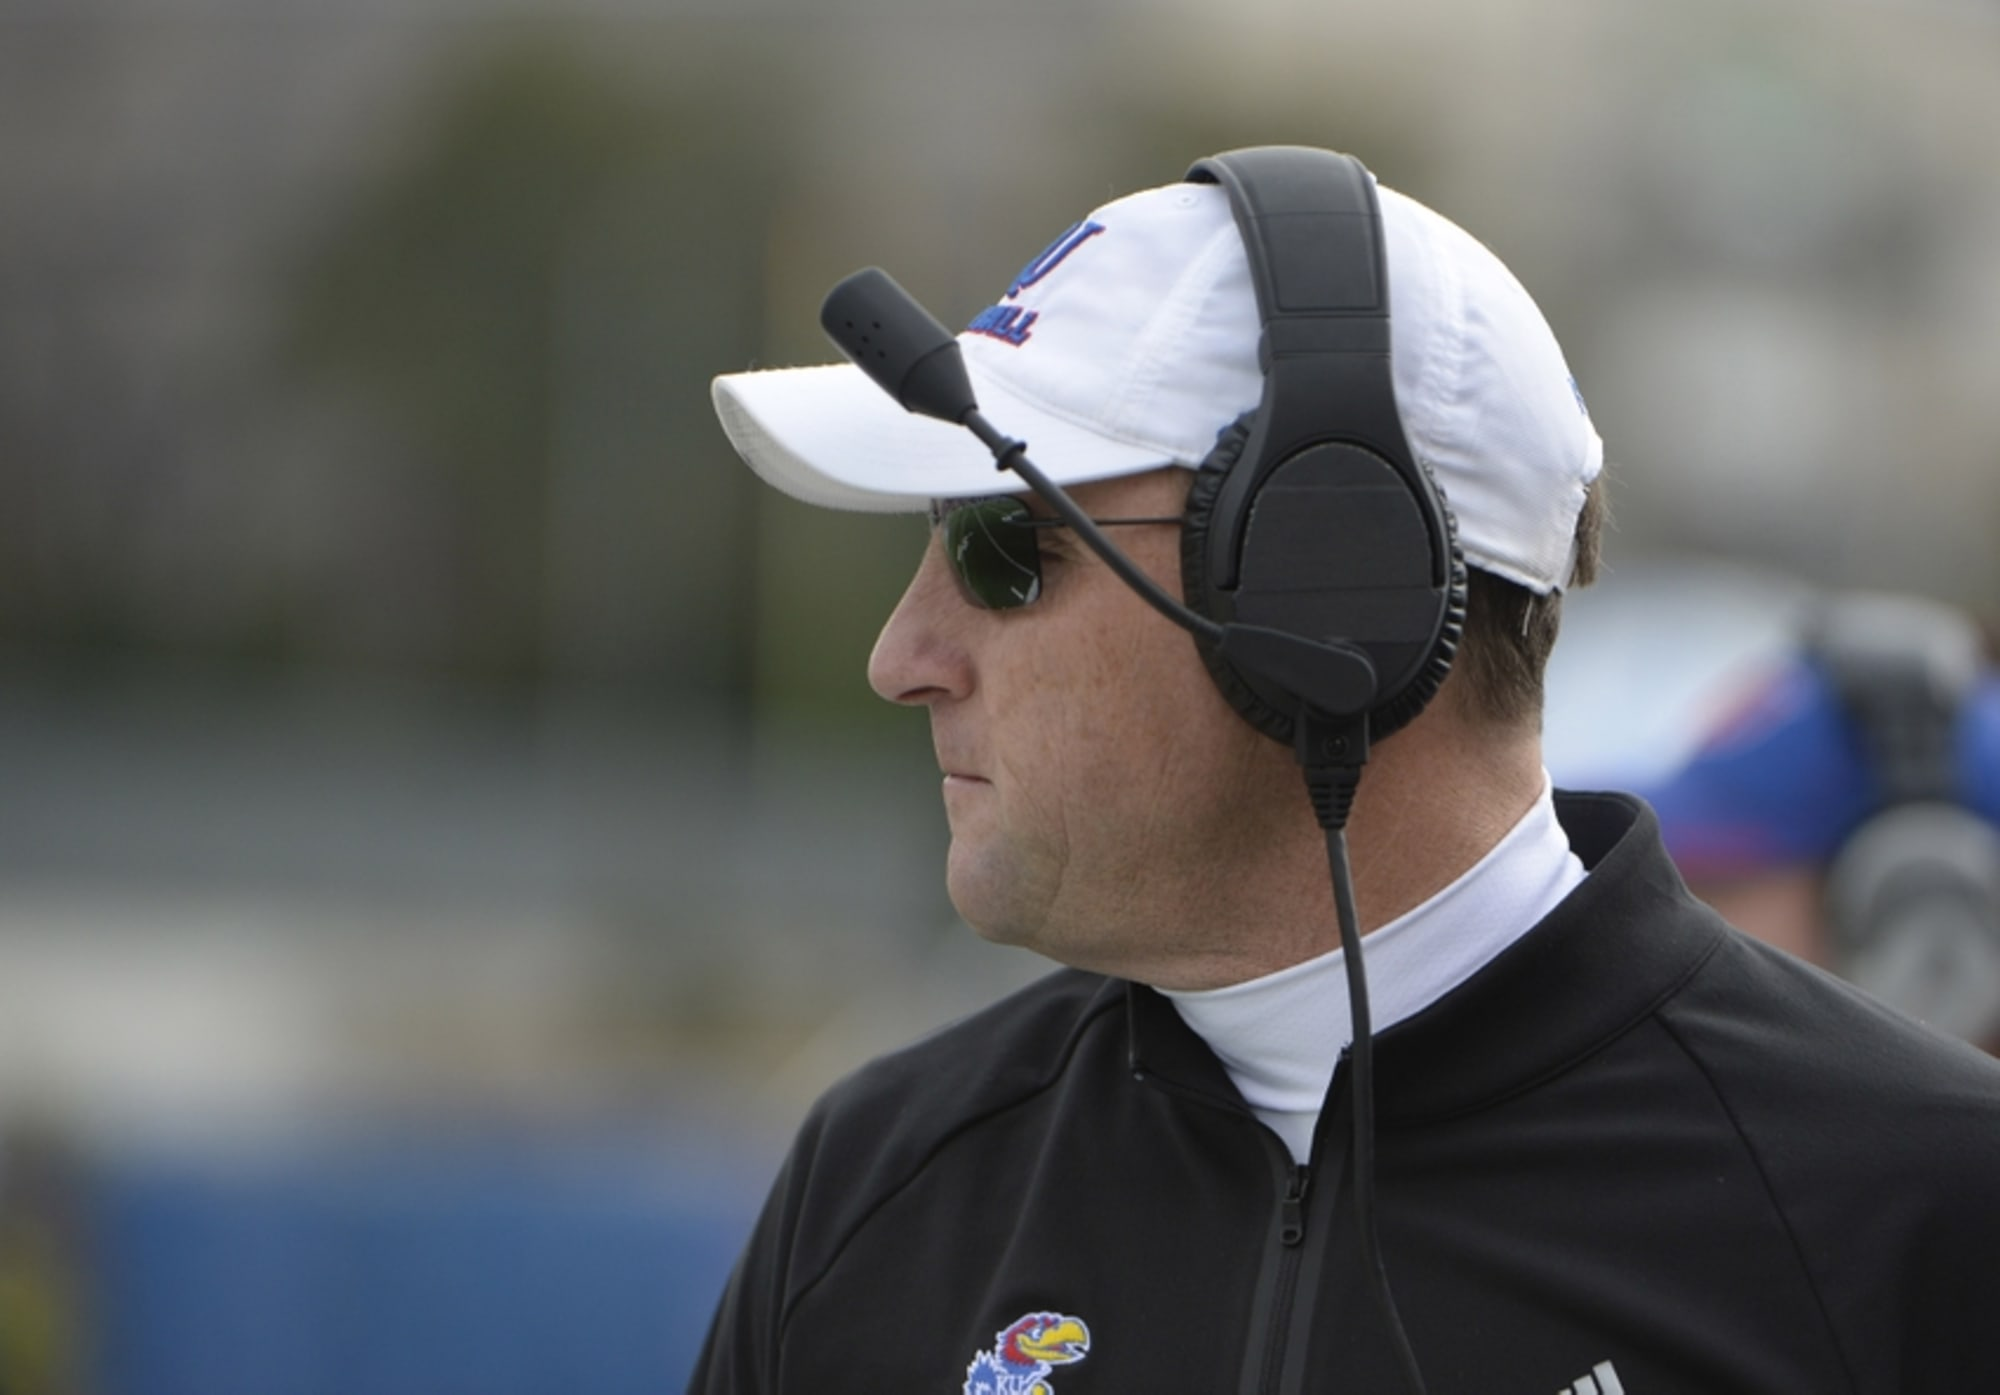 David Beaty always puts on good show at signing day